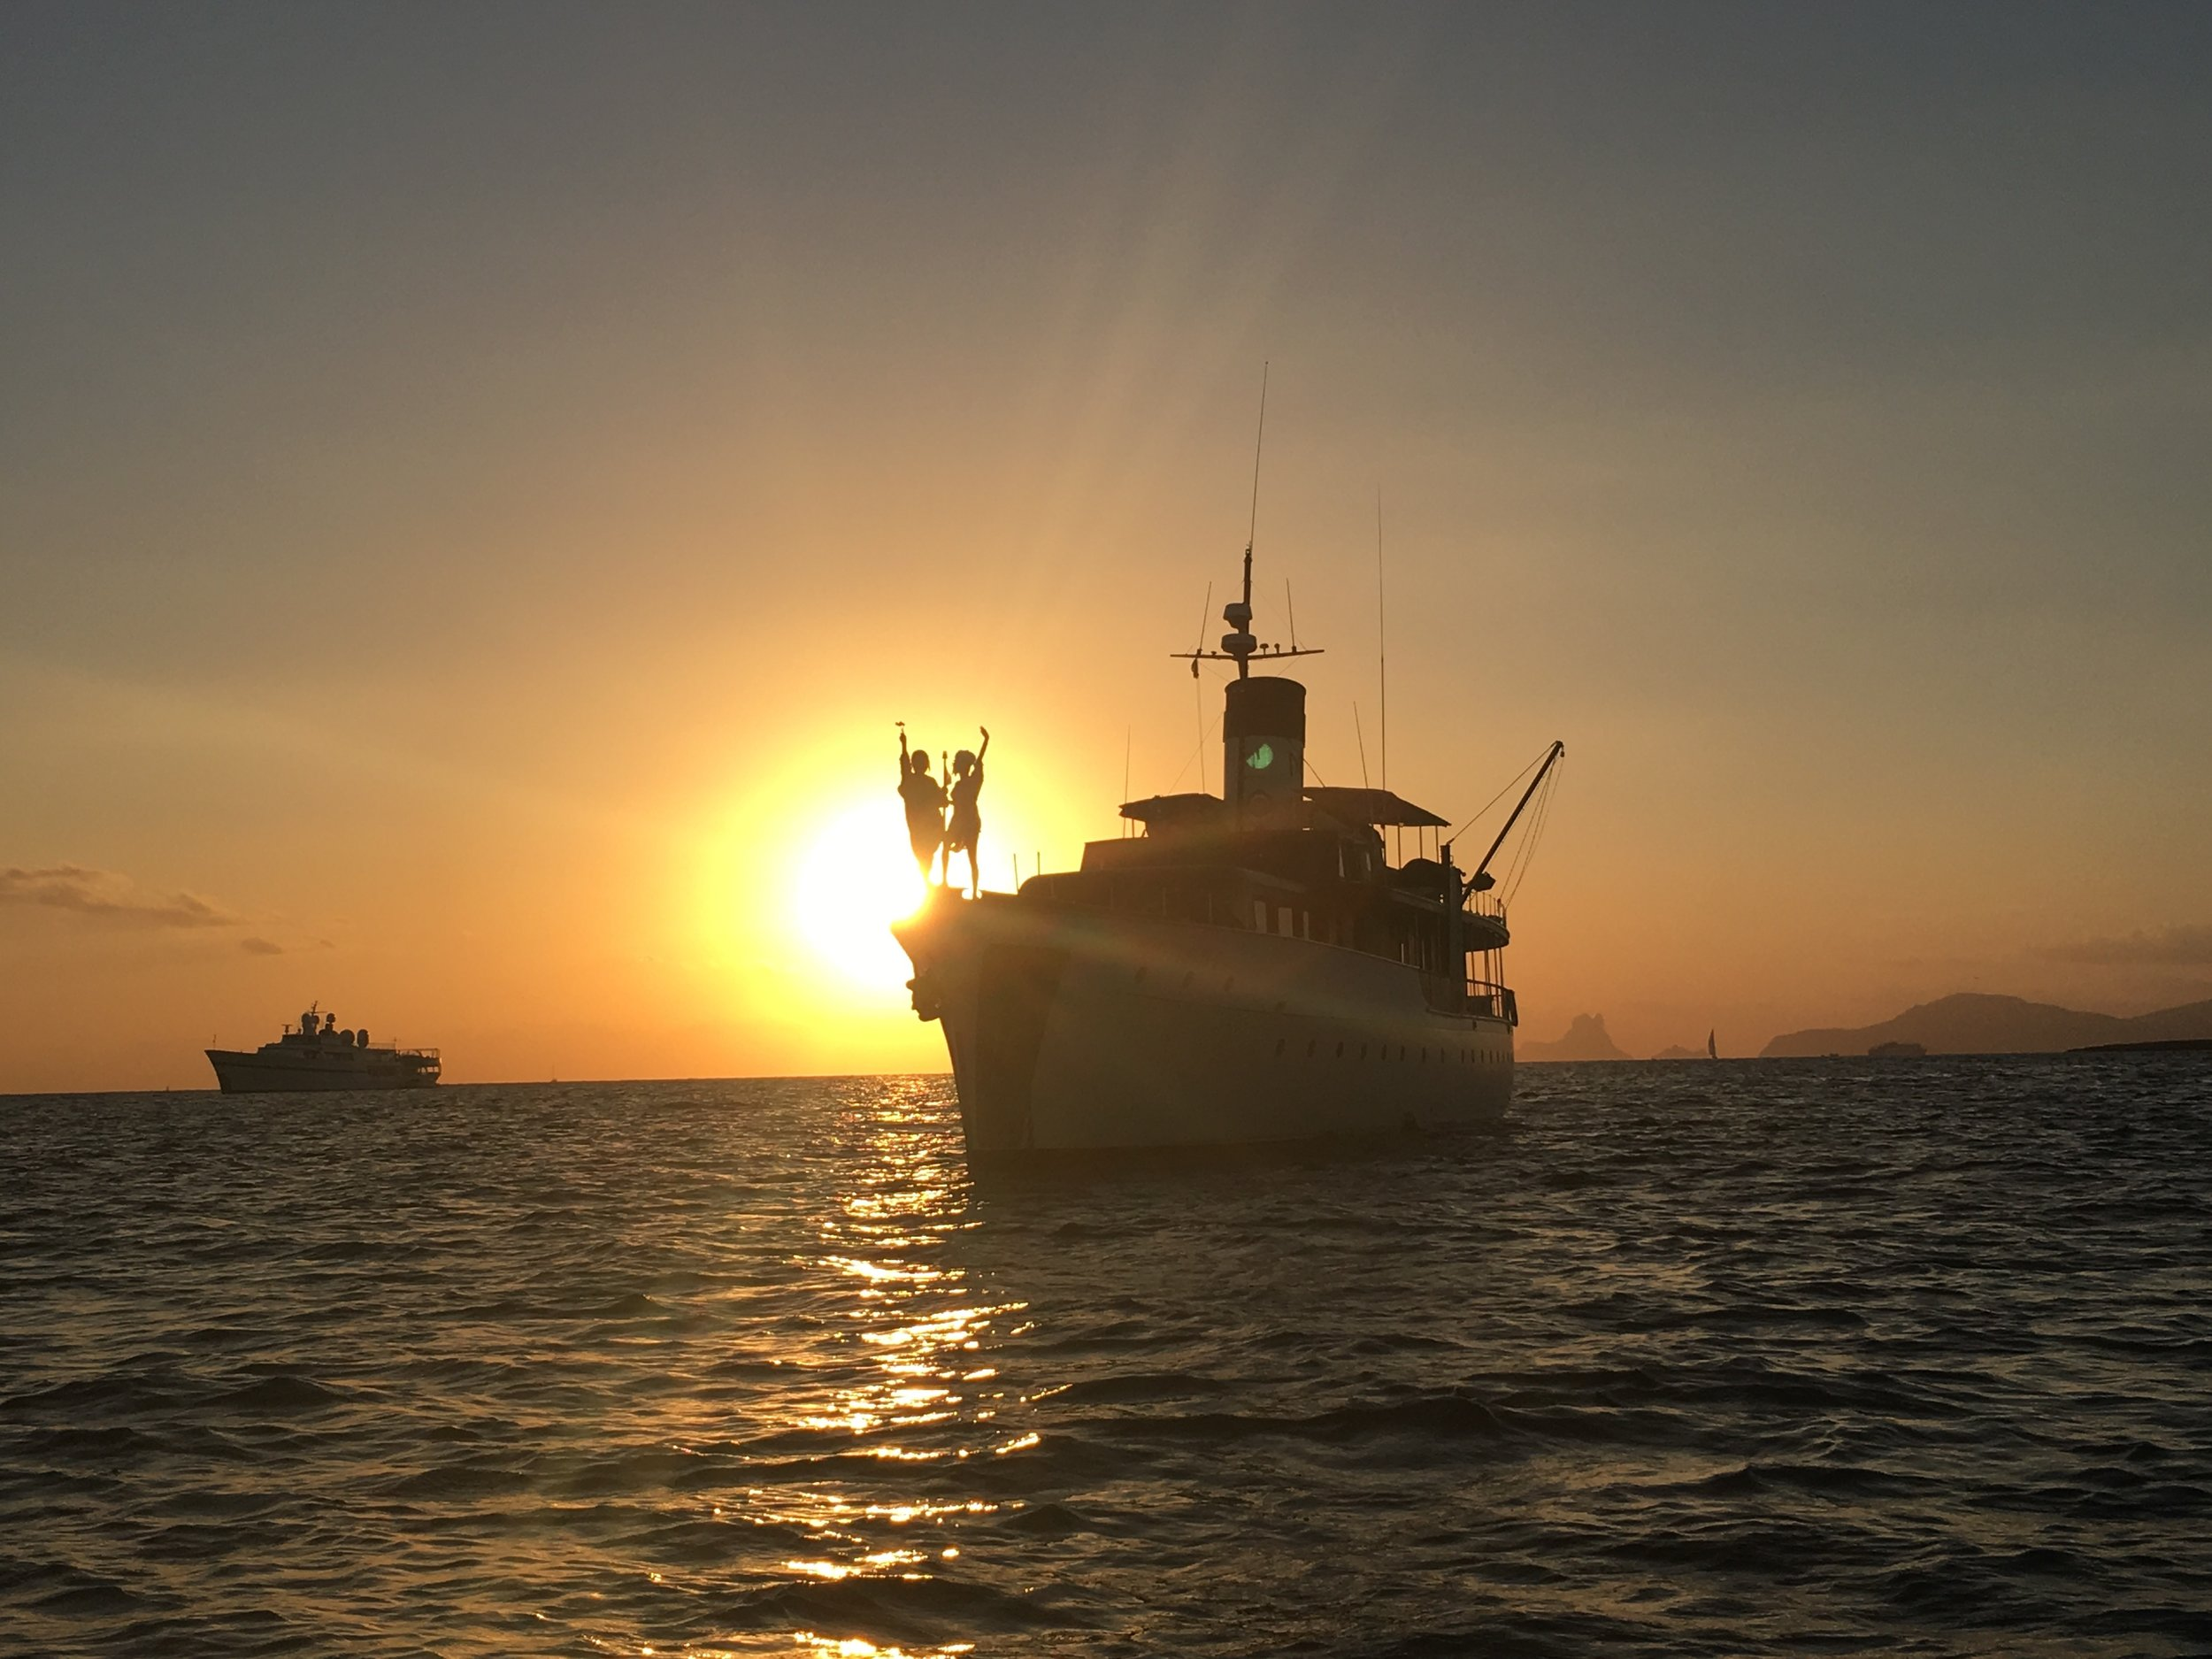 The MAID MARION II during sunset in the Mediterranean - 3 Days*